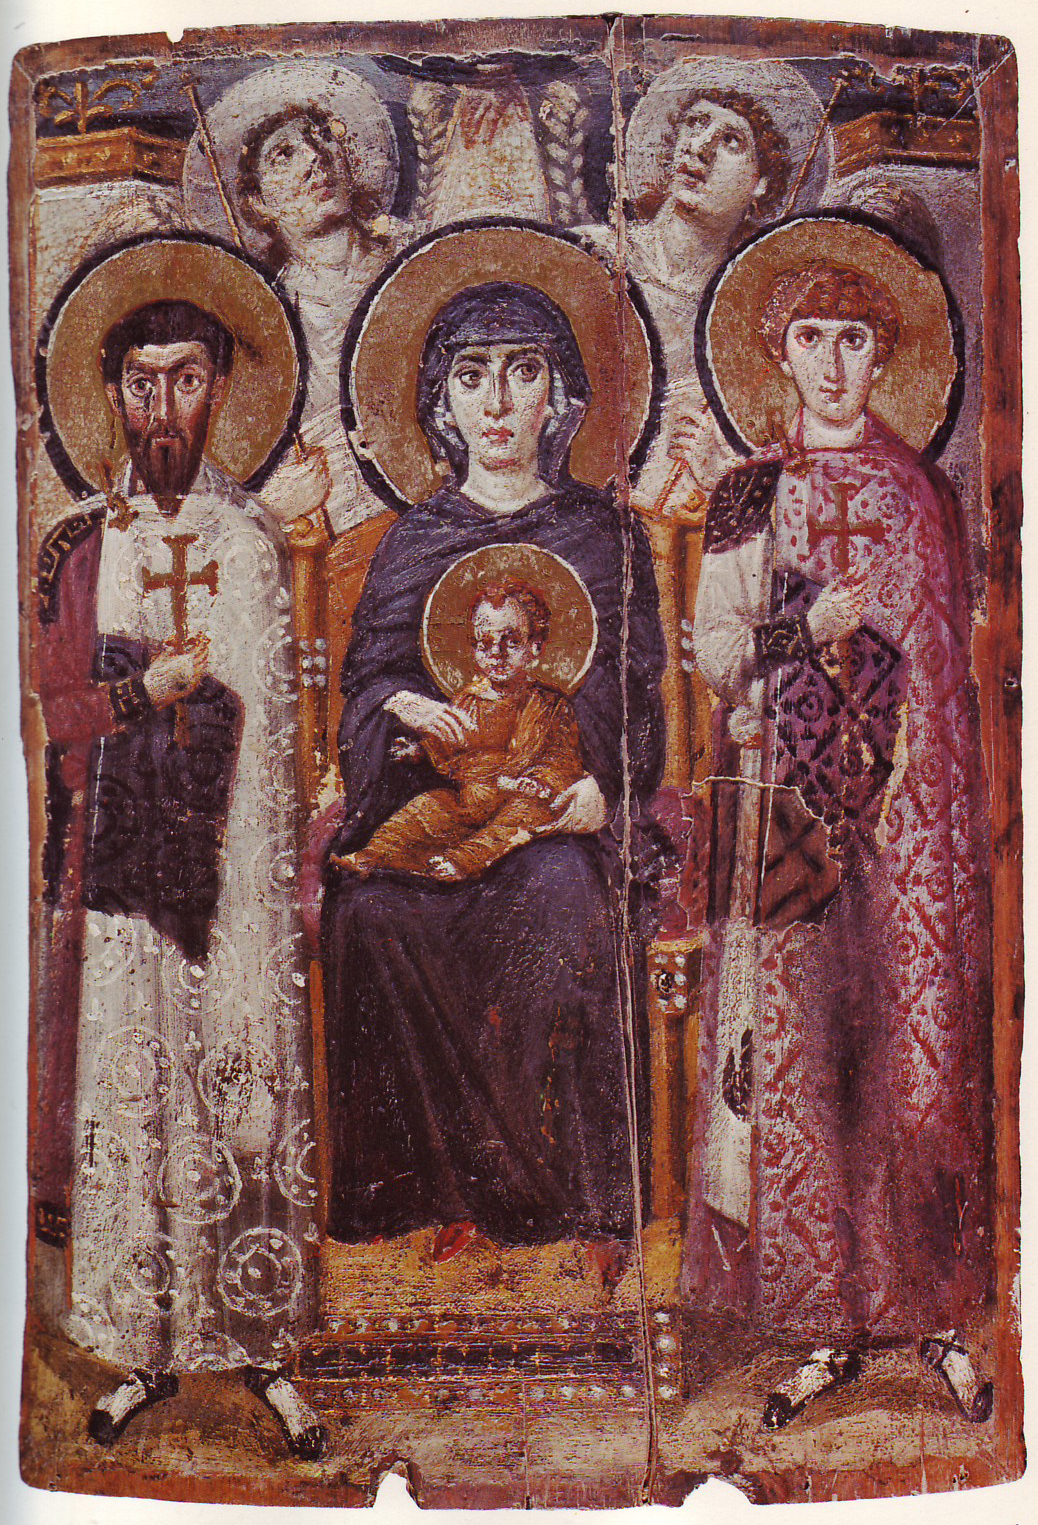 Icon of the enthroned Virgin and Child with saints and angels, and the Hand of God above. 68.5 x 49.7 cm. Saint Catherine's Monastery, Sinai, Egypt, perhaps the earliest iconic image of the subject to survive.